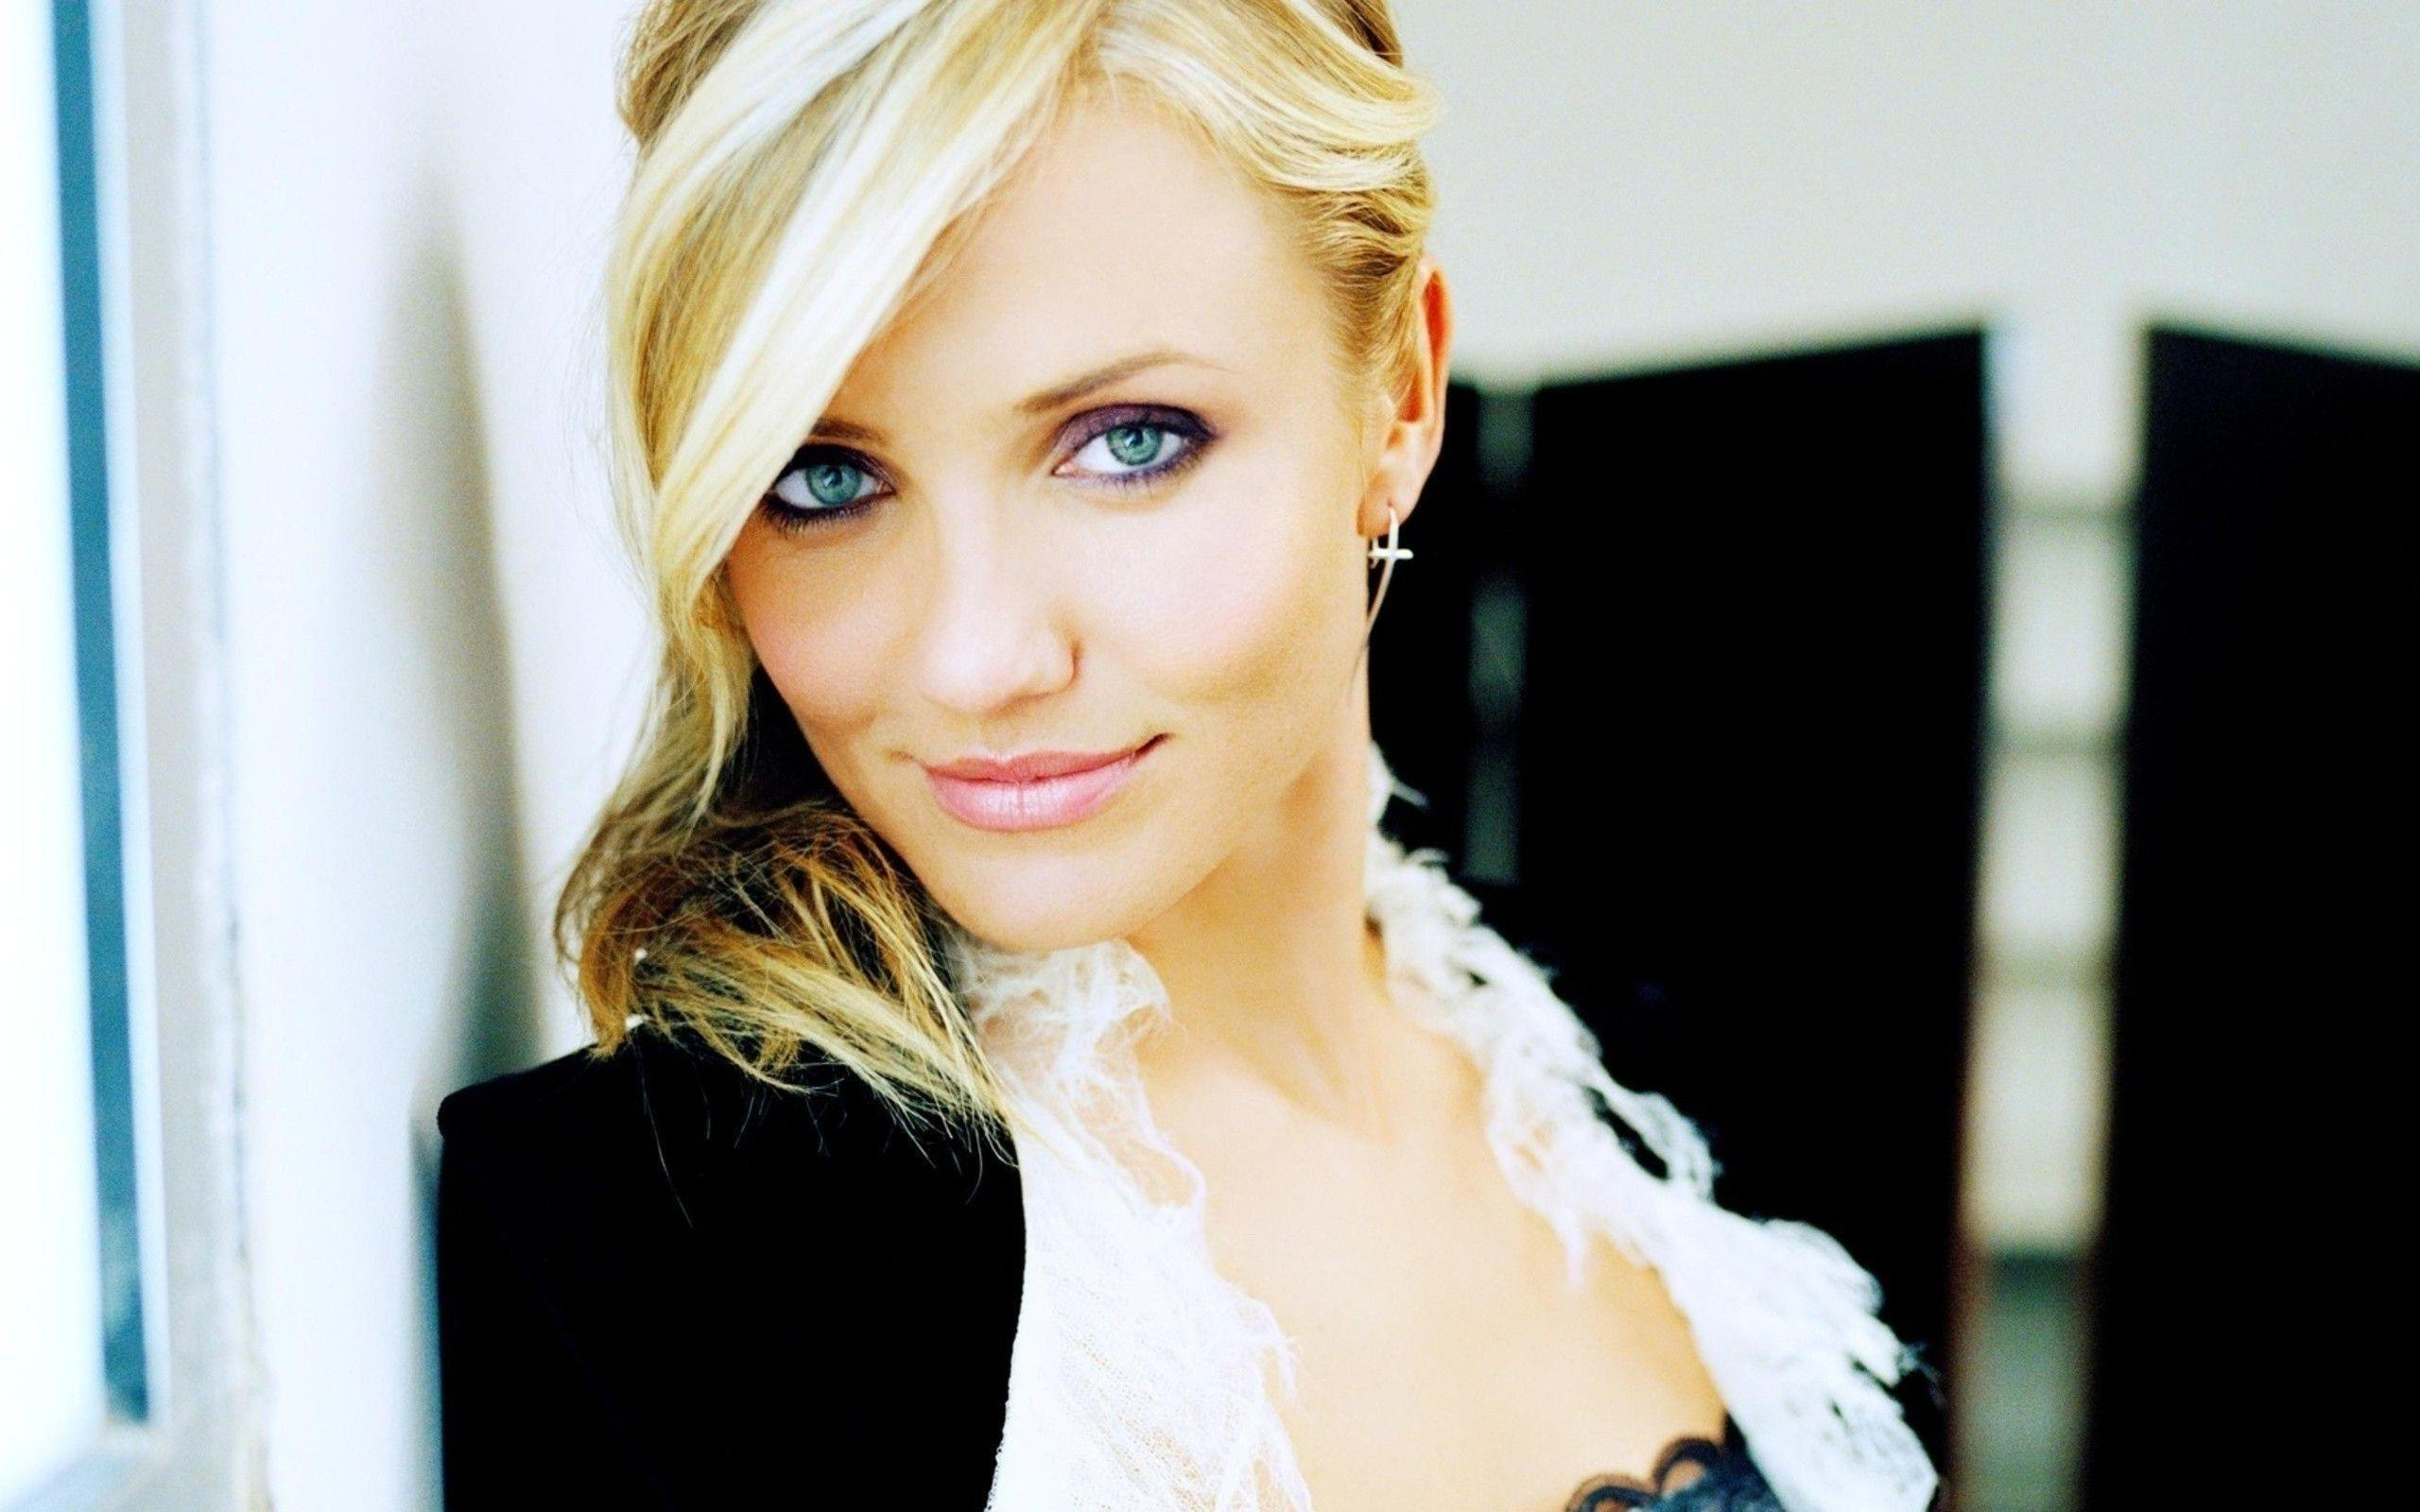 Cameron Diaz Wallpapers Images Photos Pictures Backgrounds